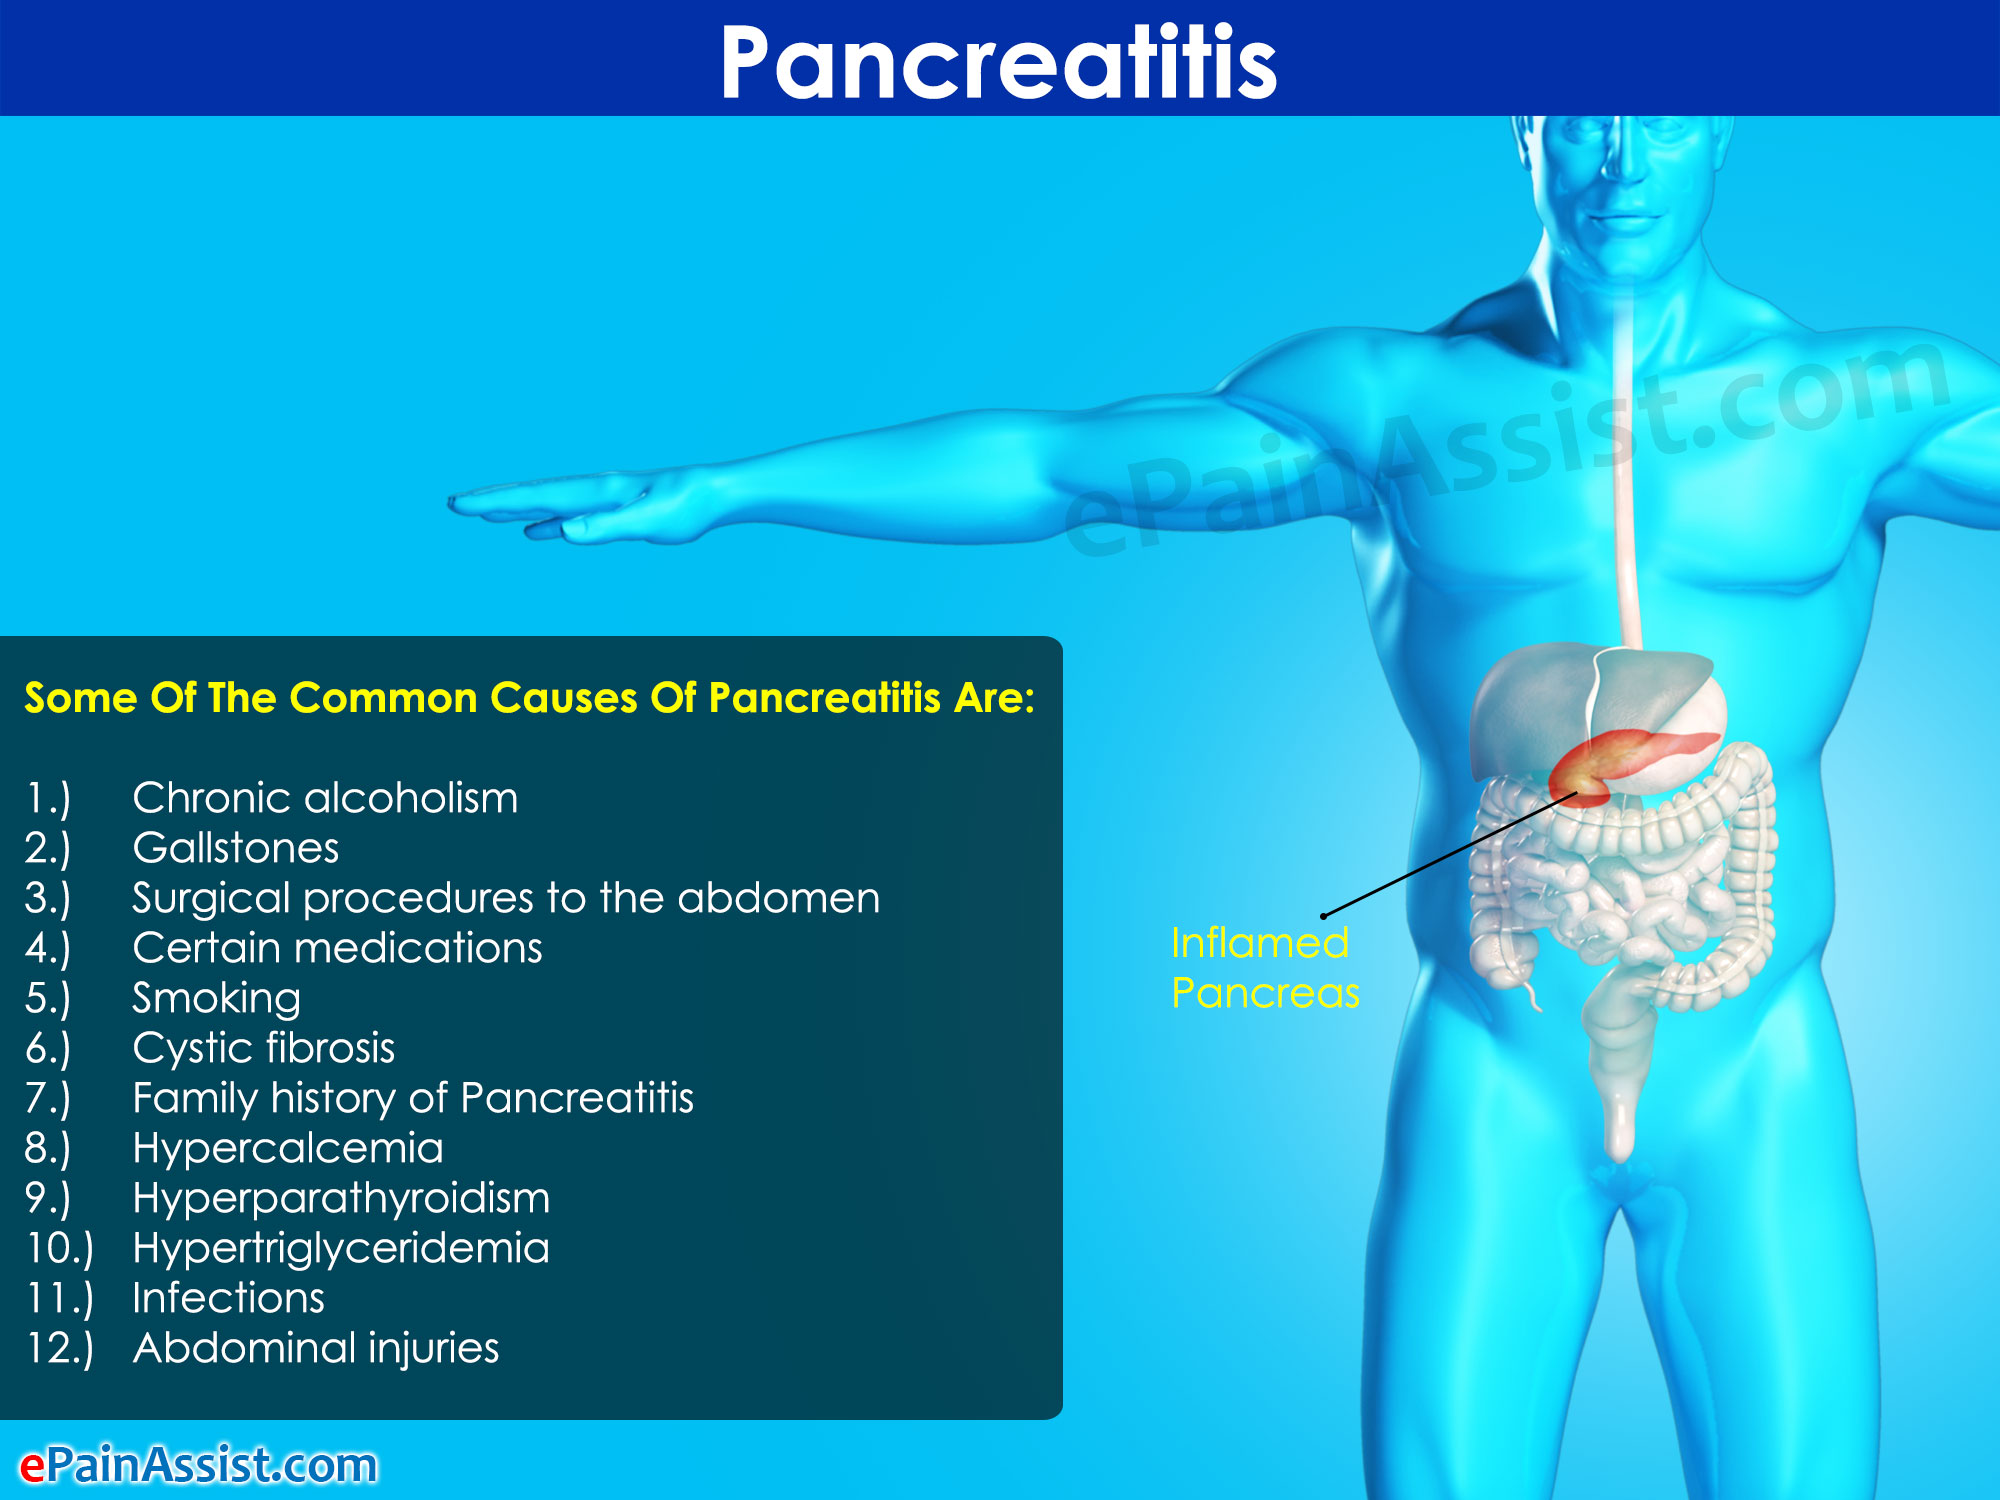 How to recognize pancreatitis in time and start treating it